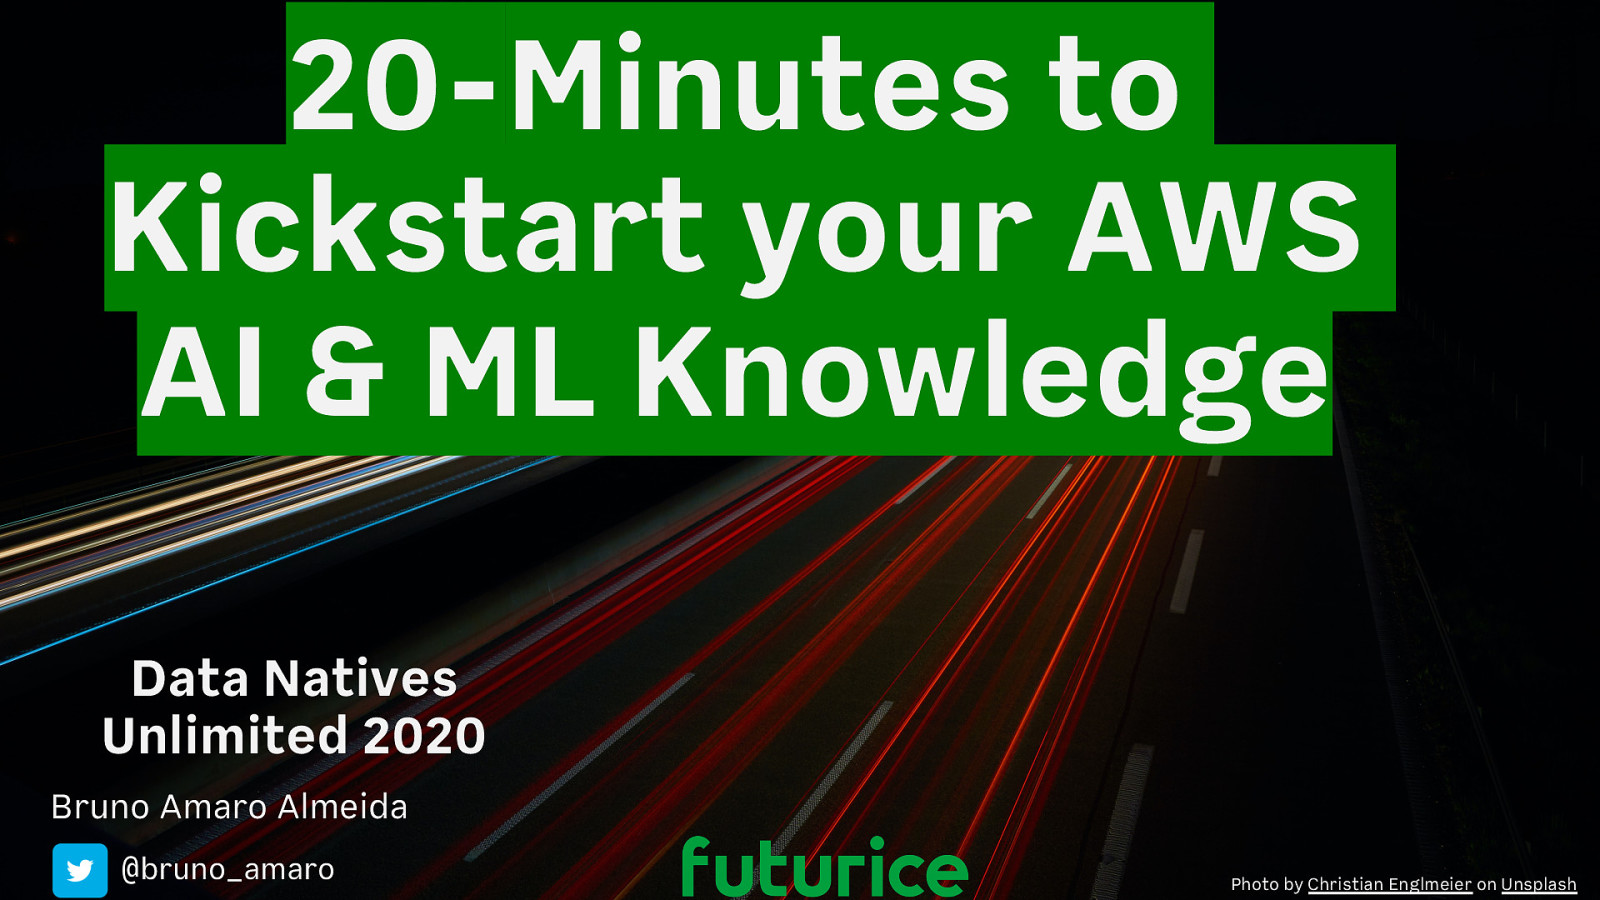 20-Minutes to Kickstart your AWS AI & ML Knowledge